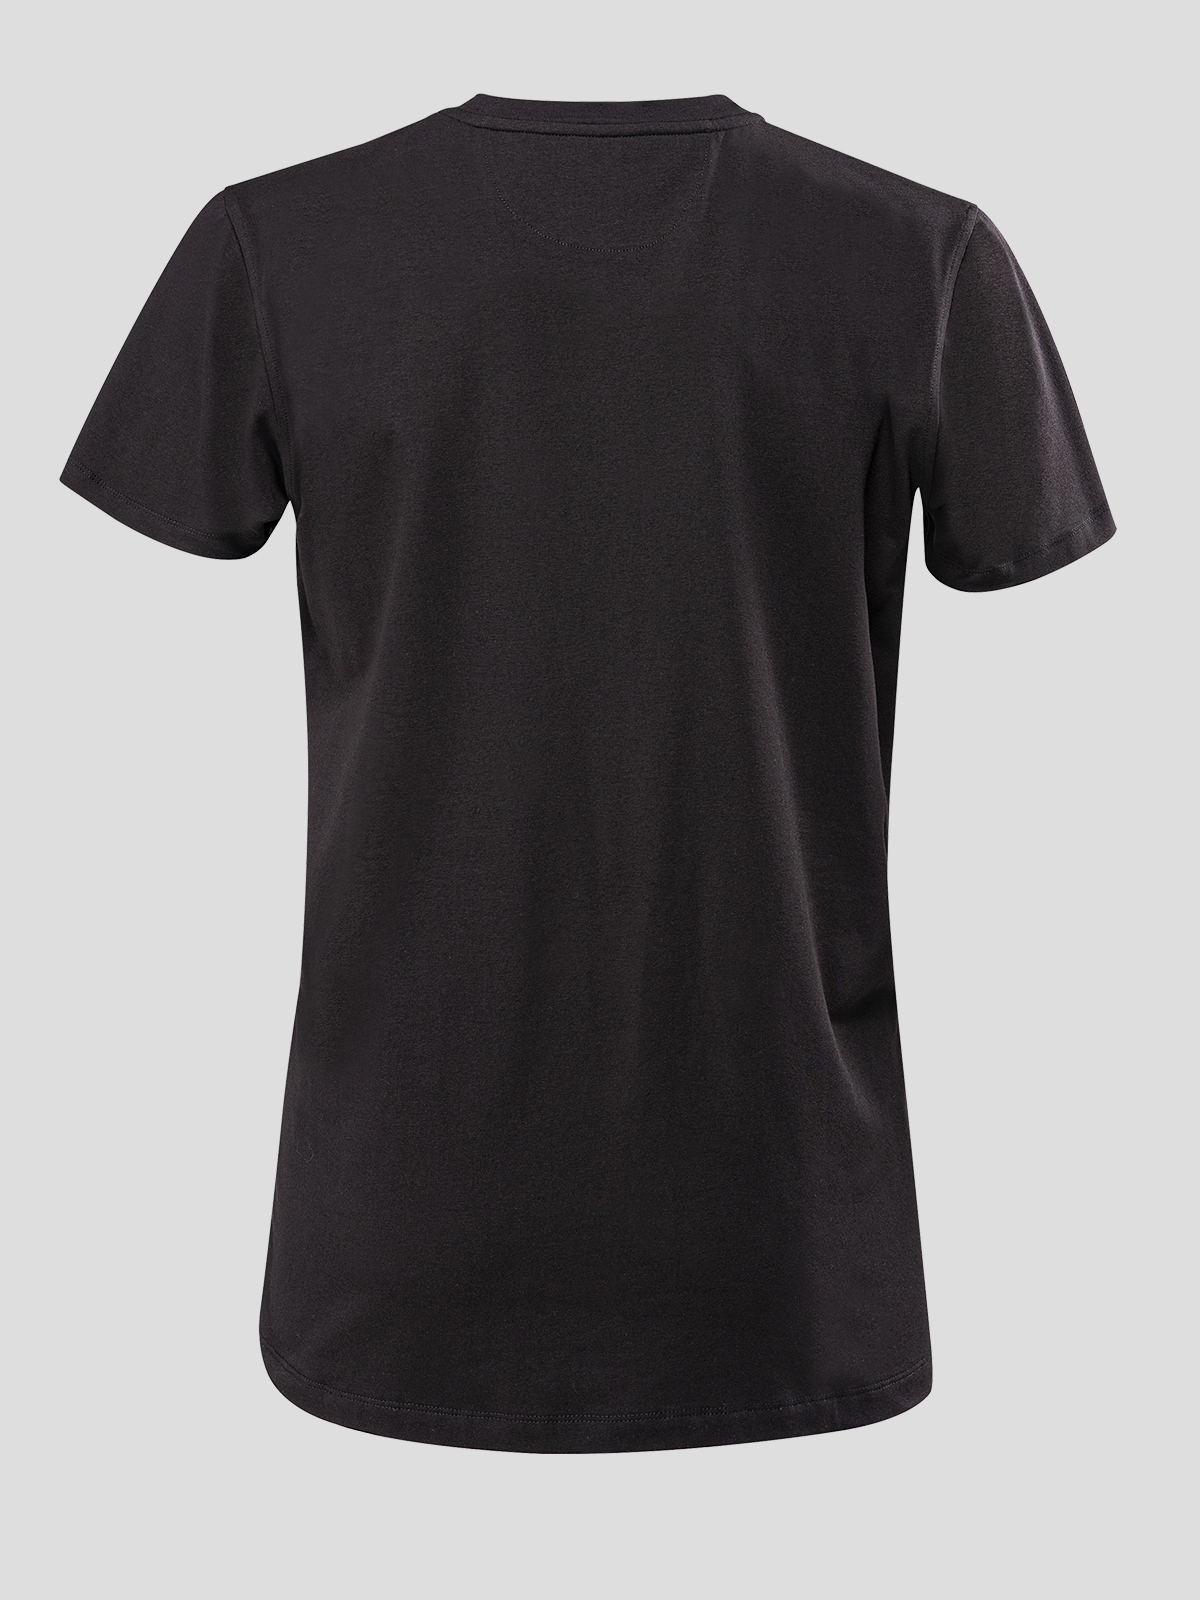 MEN'S T-SHIRT WITH EQUILINE STRIPE LOGO 3